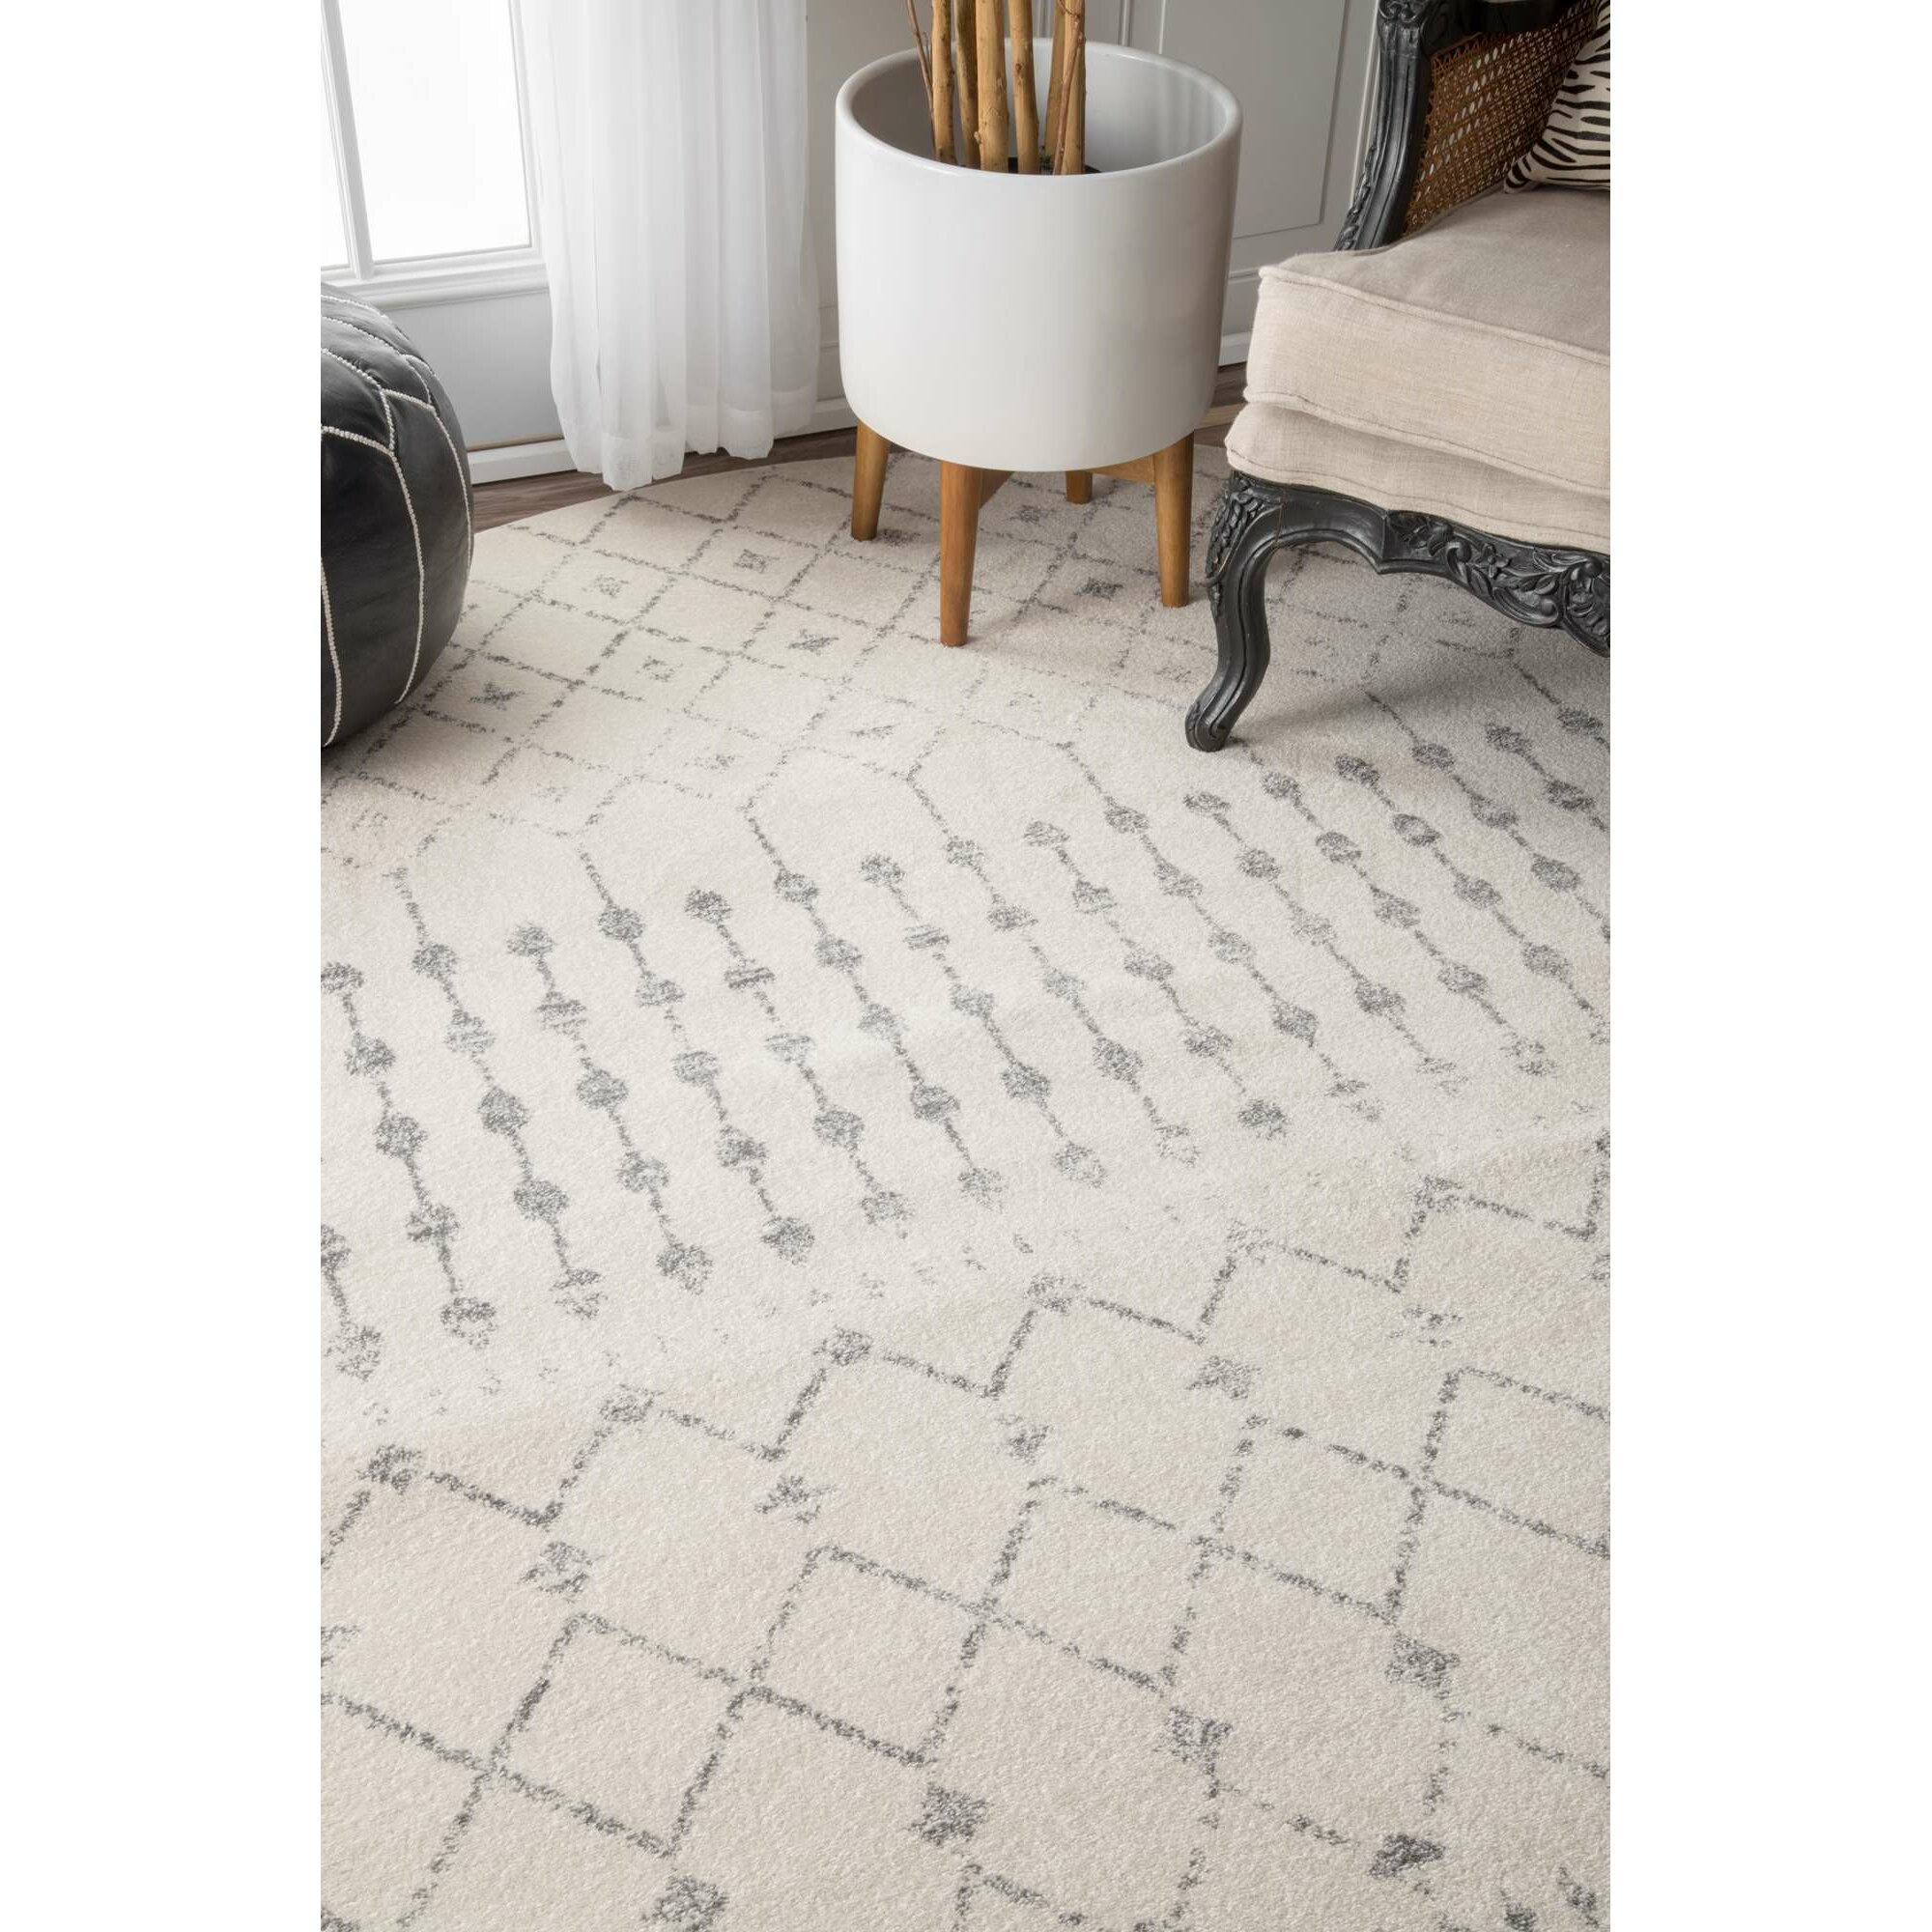 Laurel Foundry Modern Farmhouse Olga Gray Area Rug & Reviews